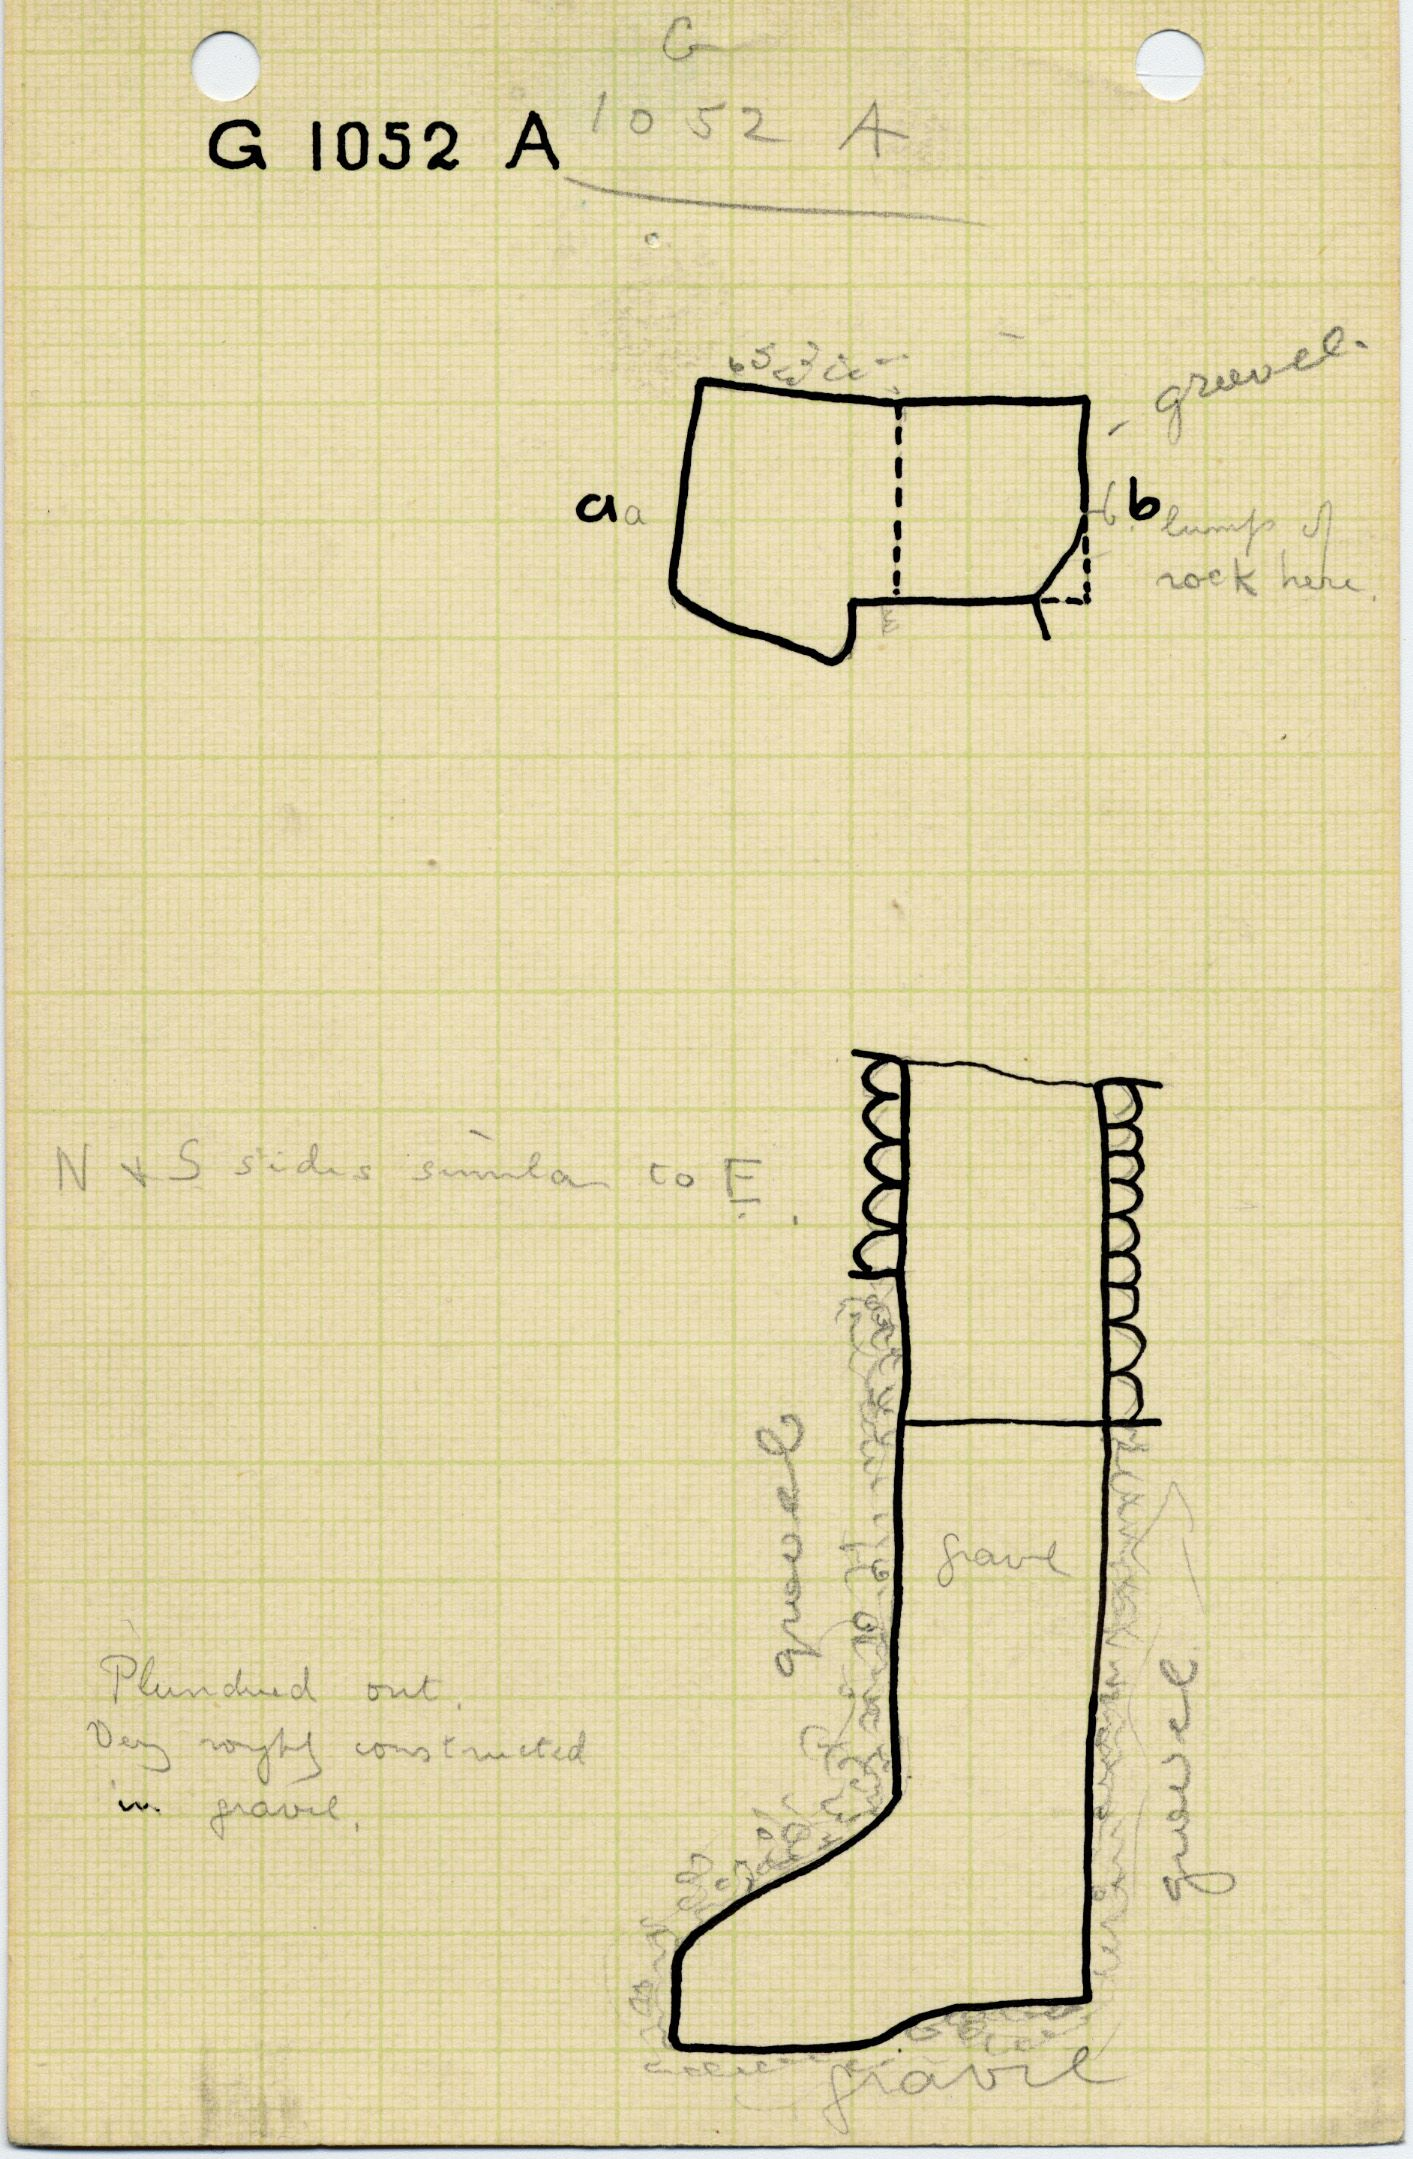 Maps and plans: G 1052, Shaft A